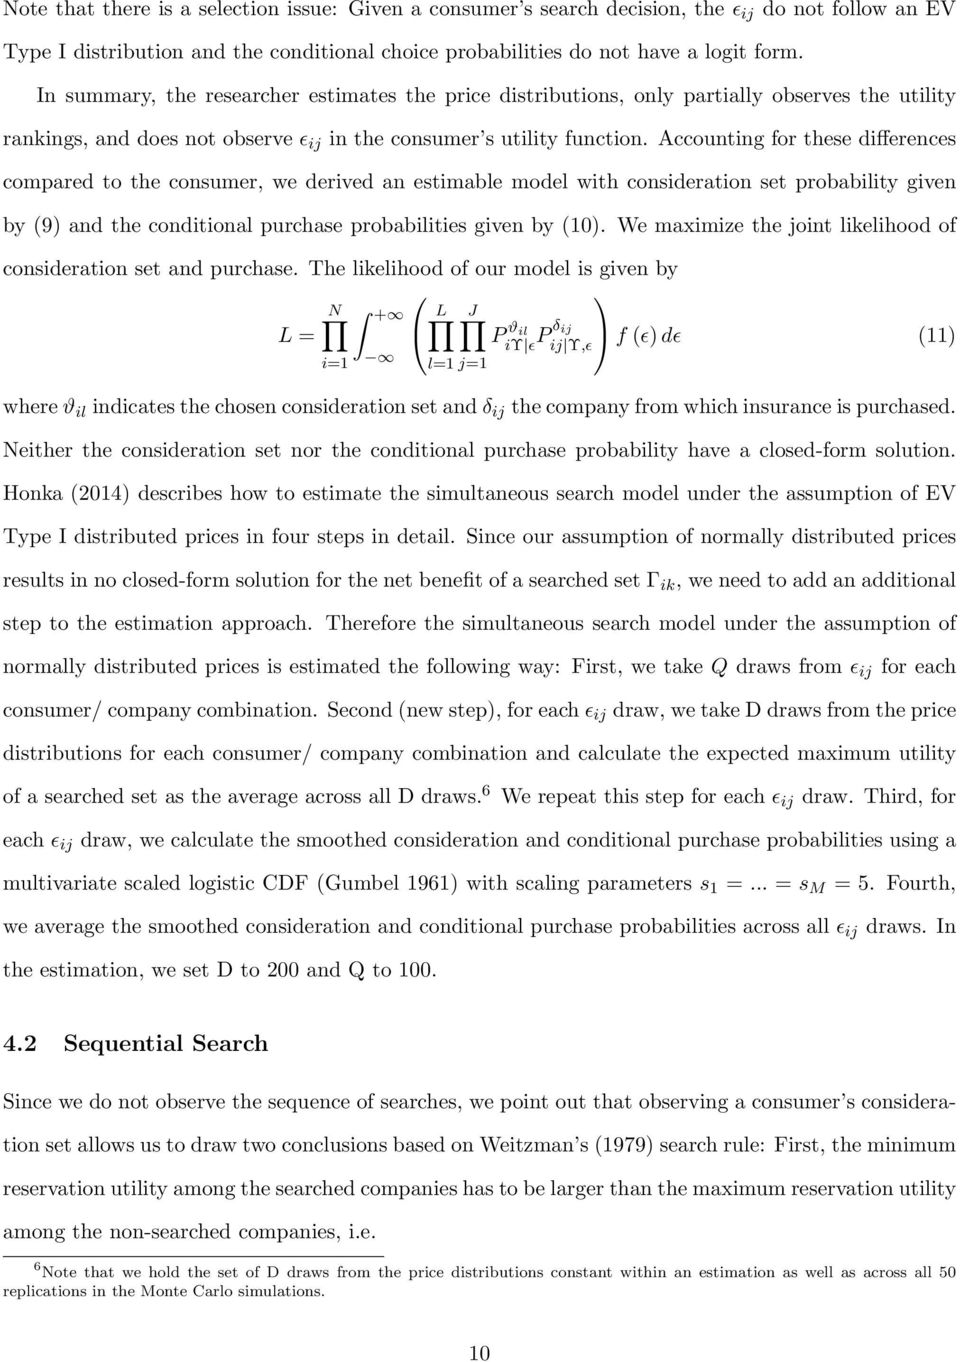 Accounting for these differences compared to the consumer, we derived an estimable model with consideration set probability given by (9) and the conditional purchase probabilities given by (10).